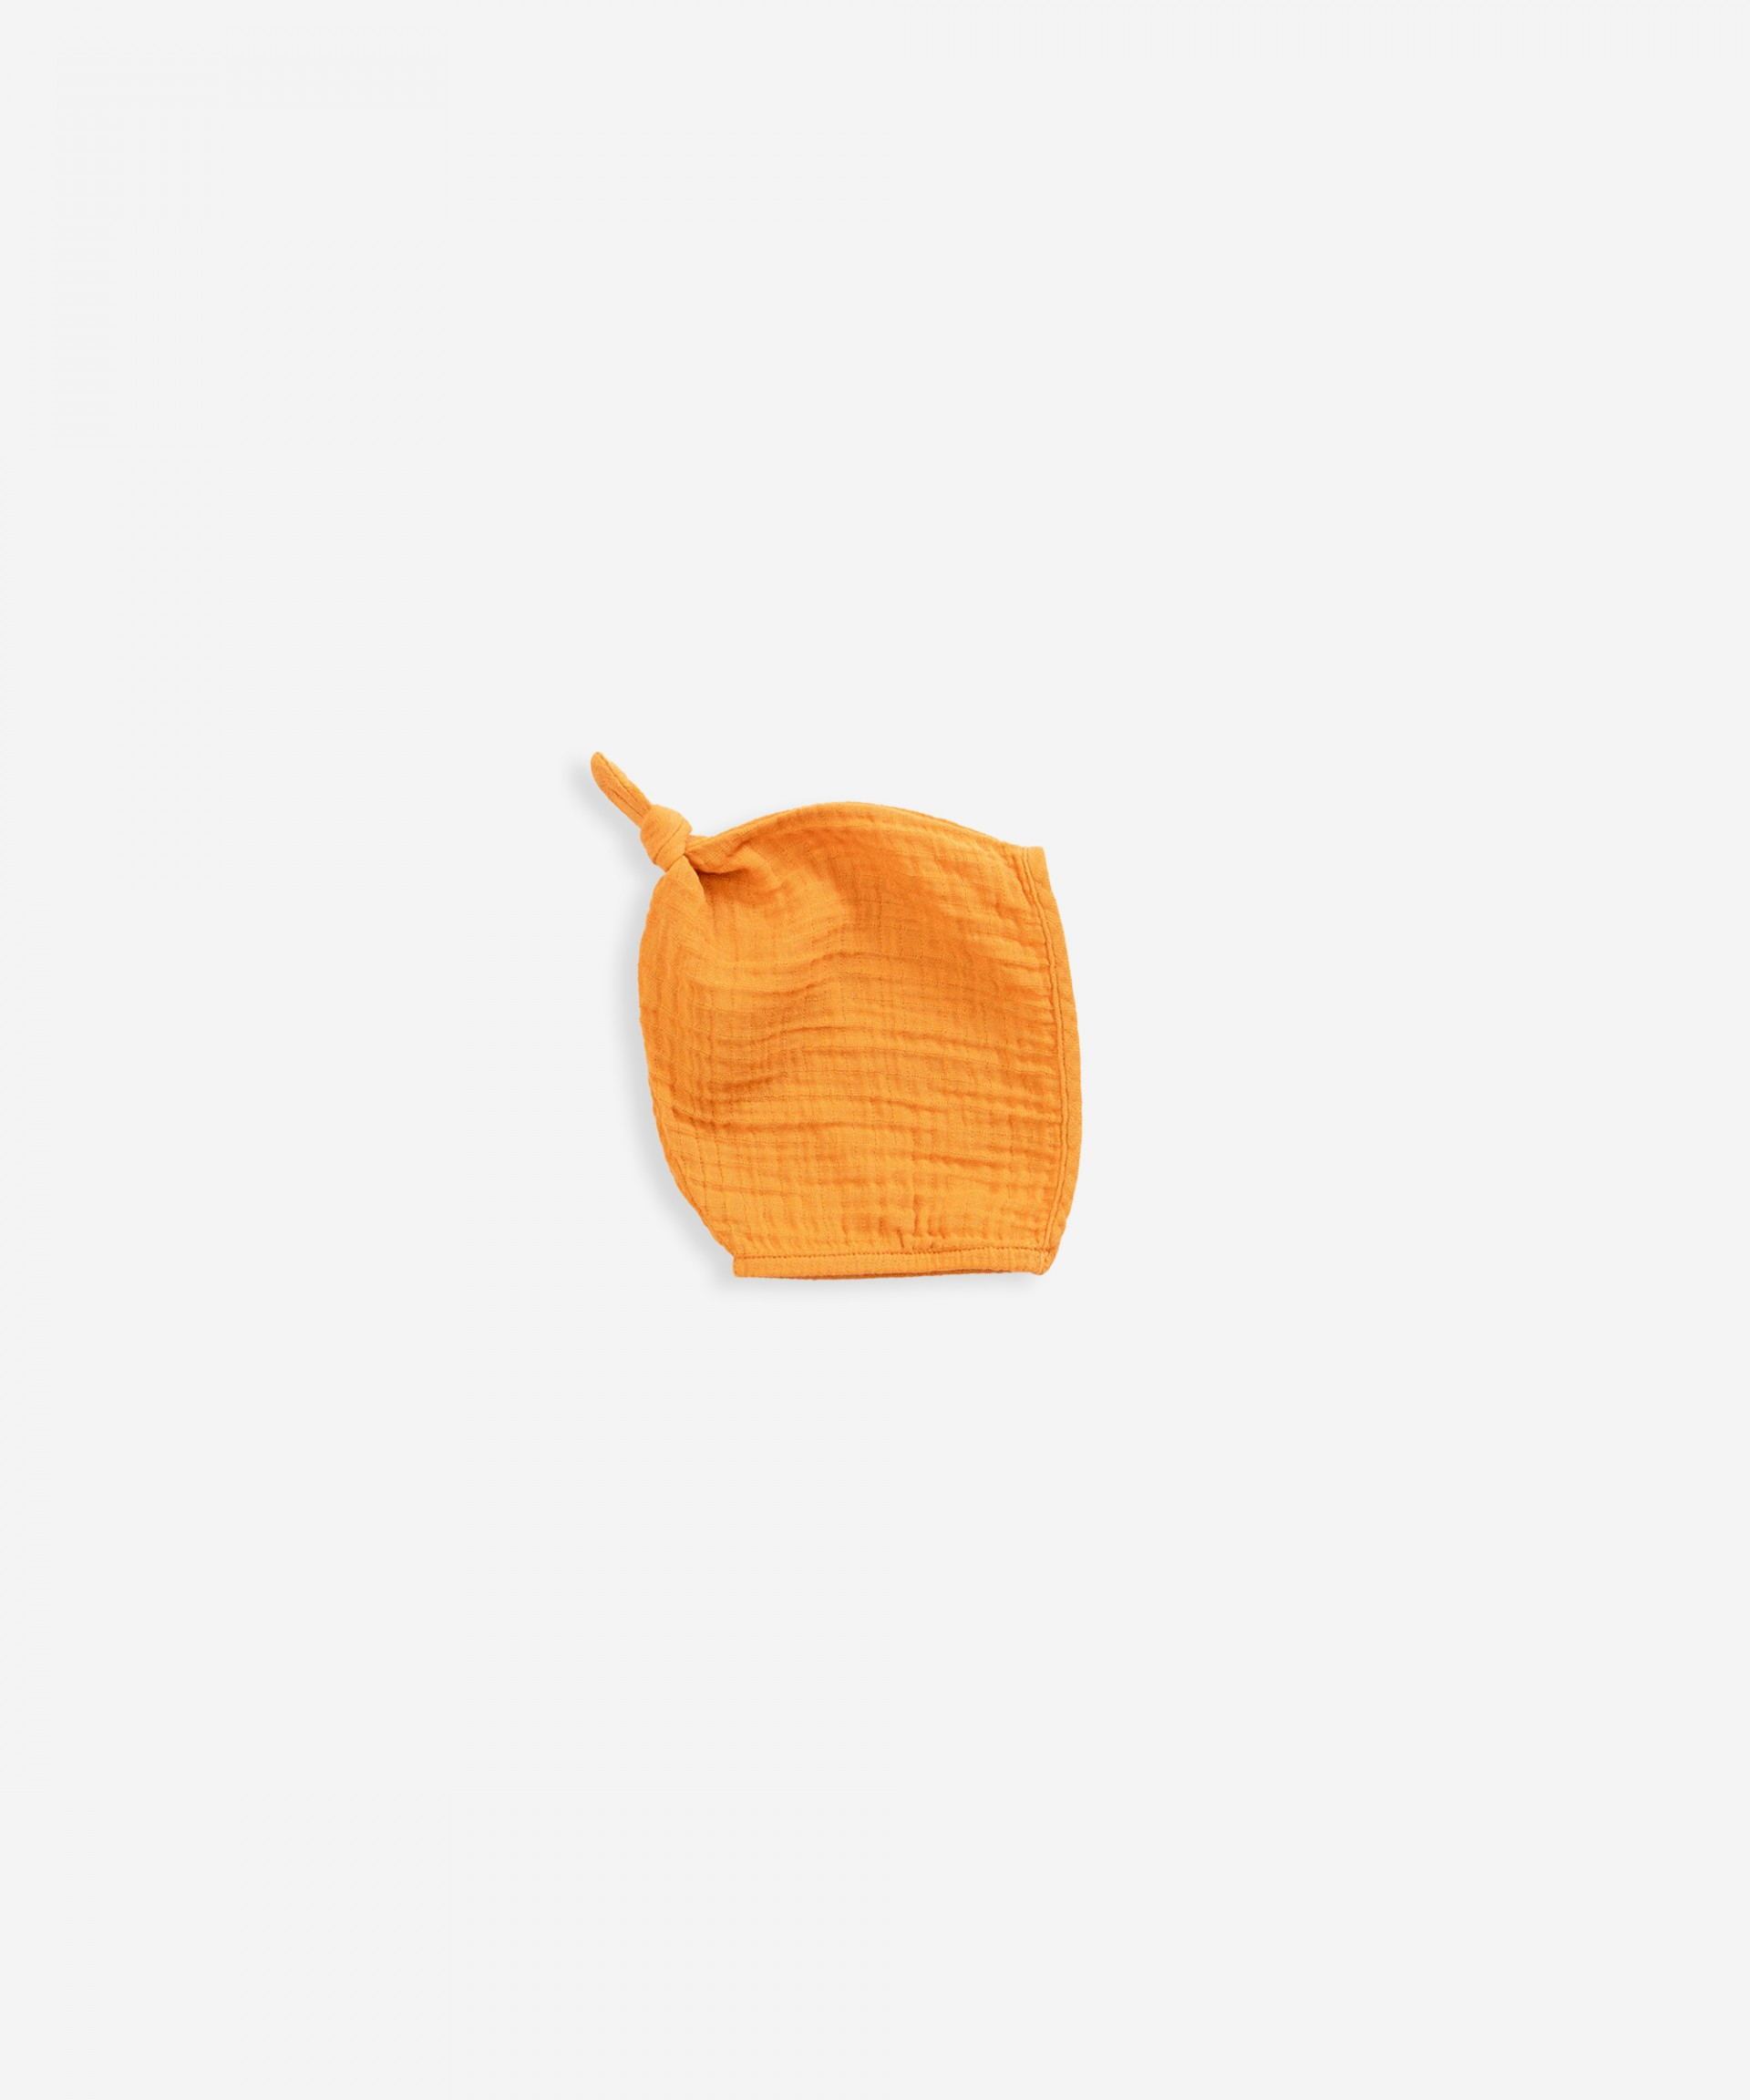 Knitted hat in organic cotton |Weaving